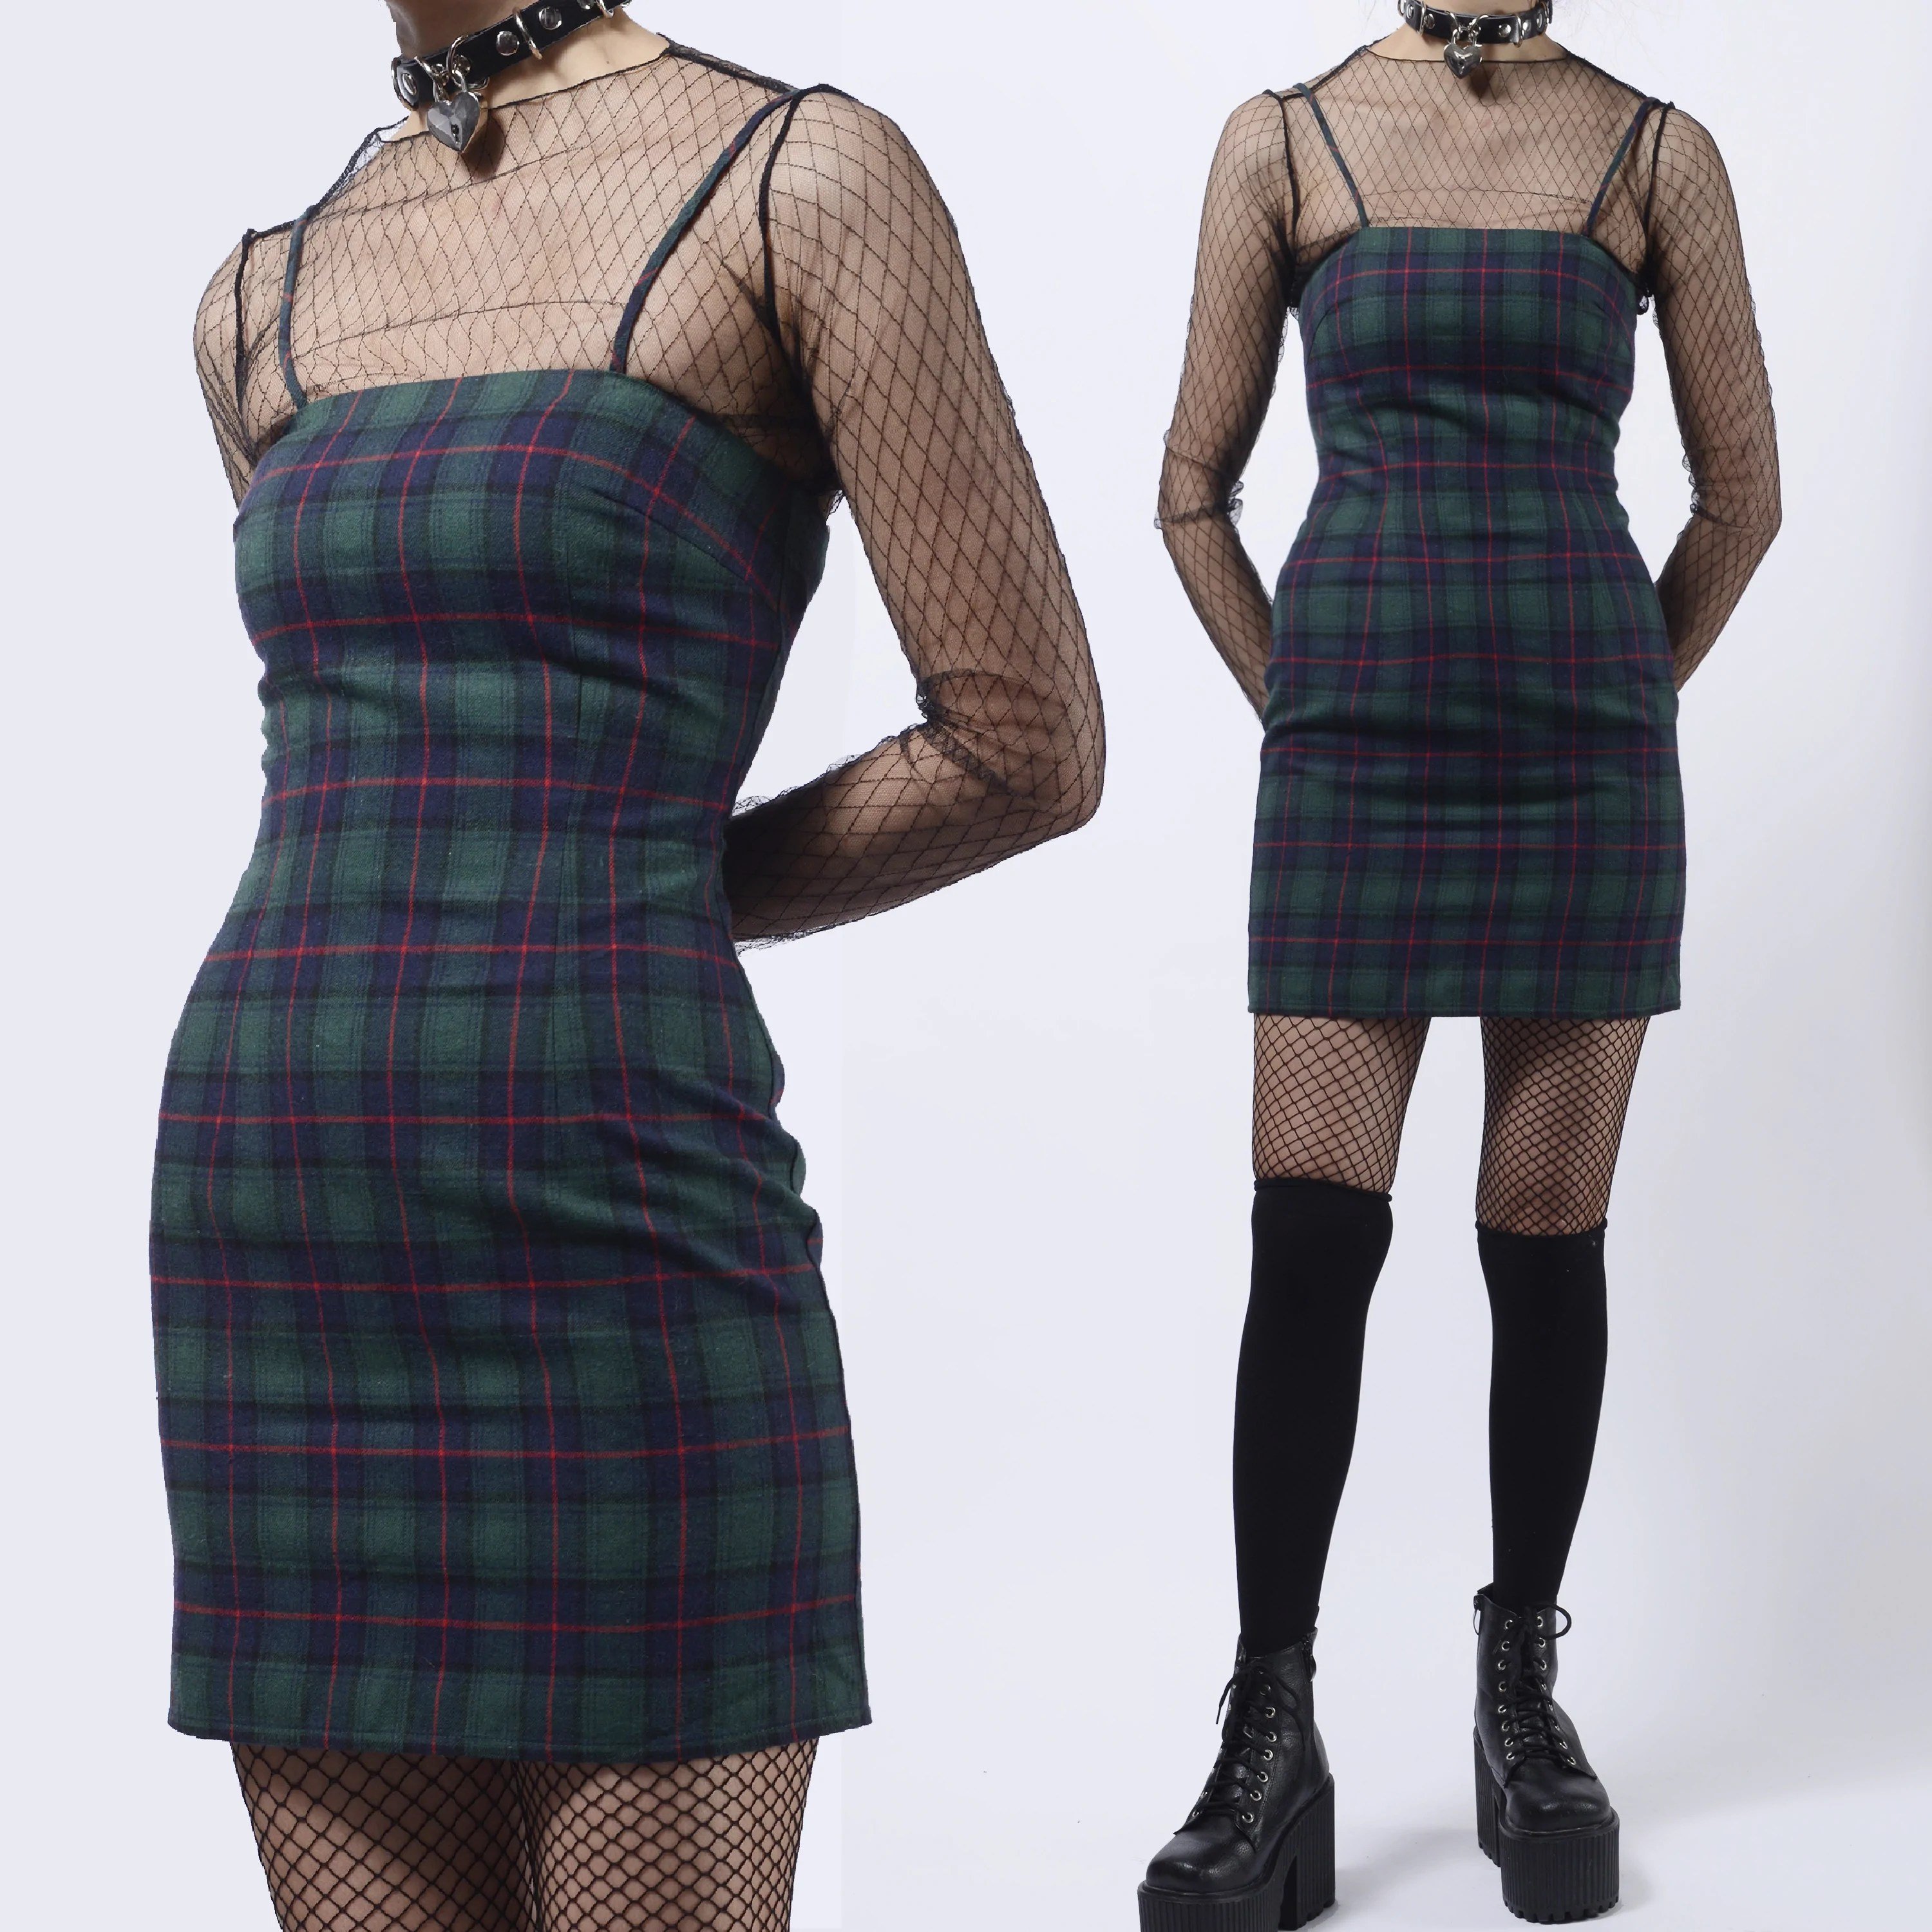 43116082d578 2019 New Limited Edition Tumblr Soft Grunge 90s Kids Green Plaid